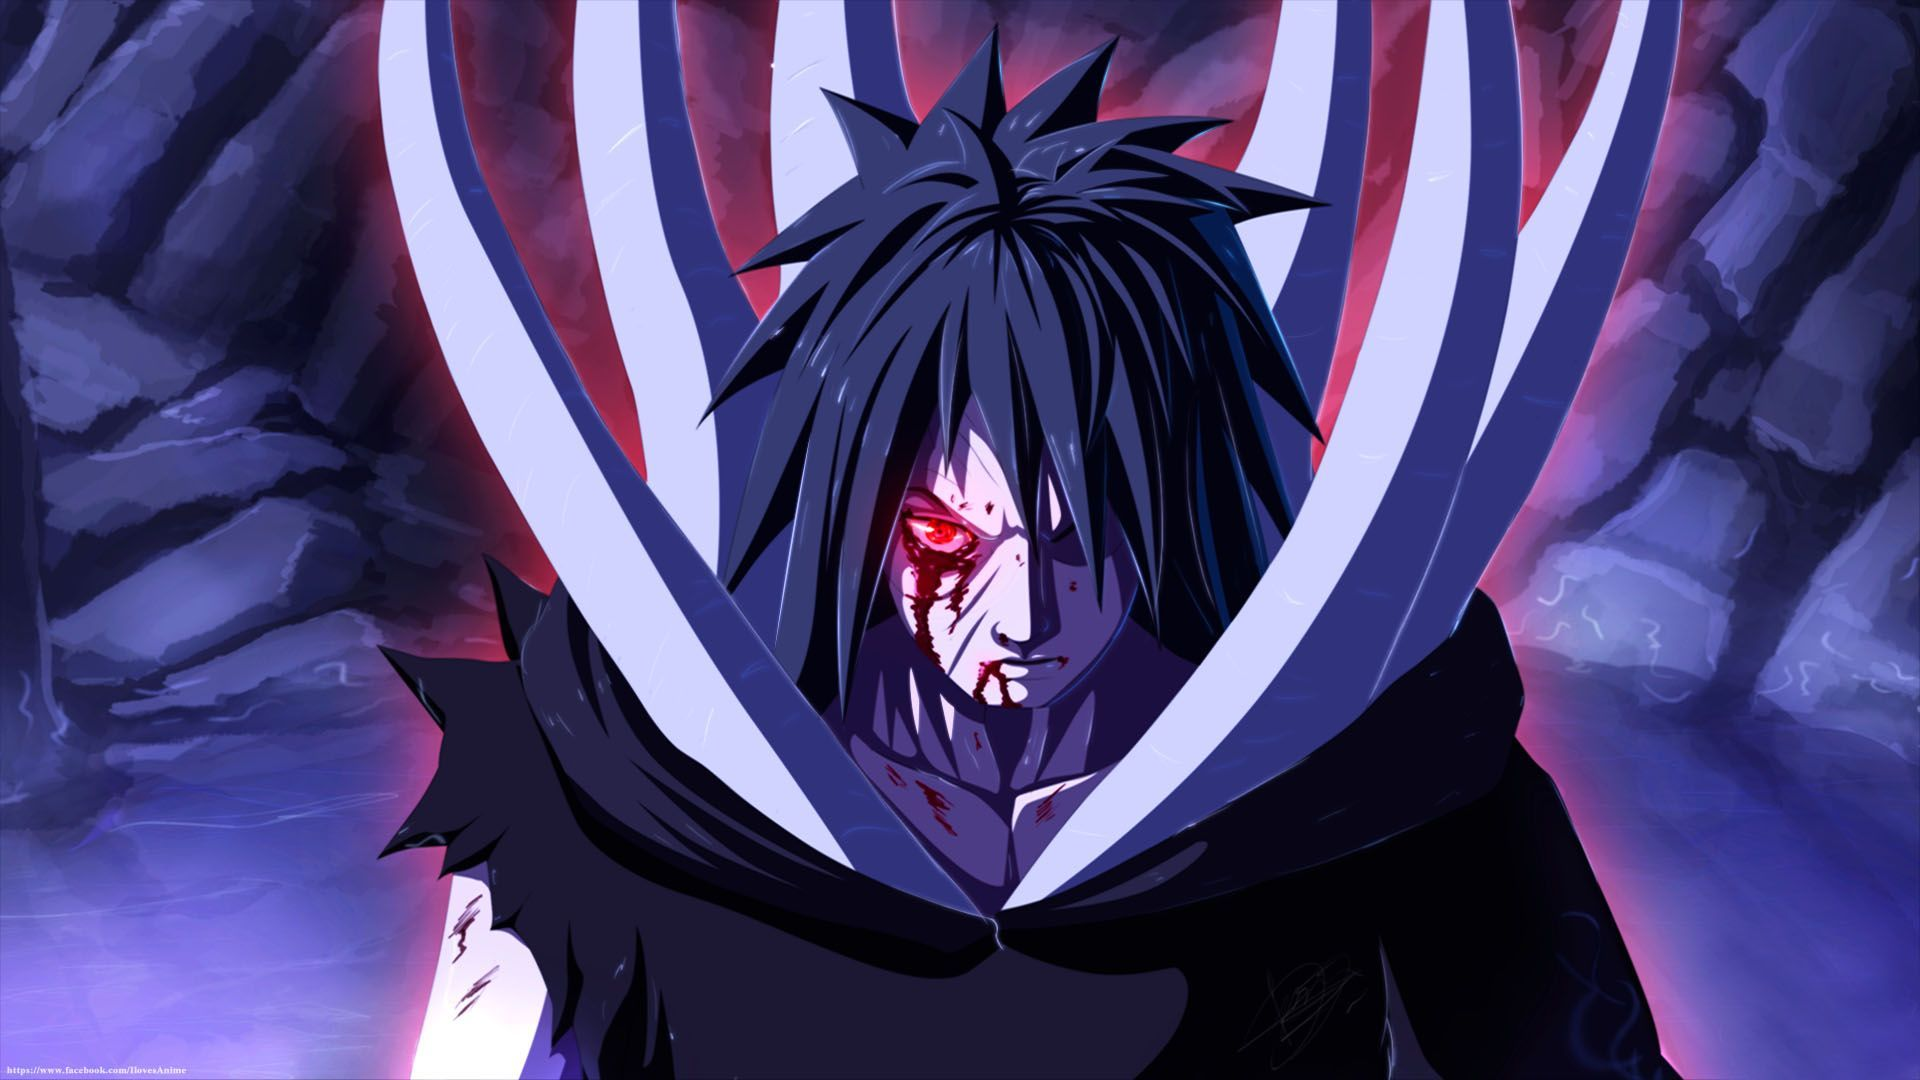 Obito Uchiha Wallpapers Wallpaper Cave Sasuke uchiha